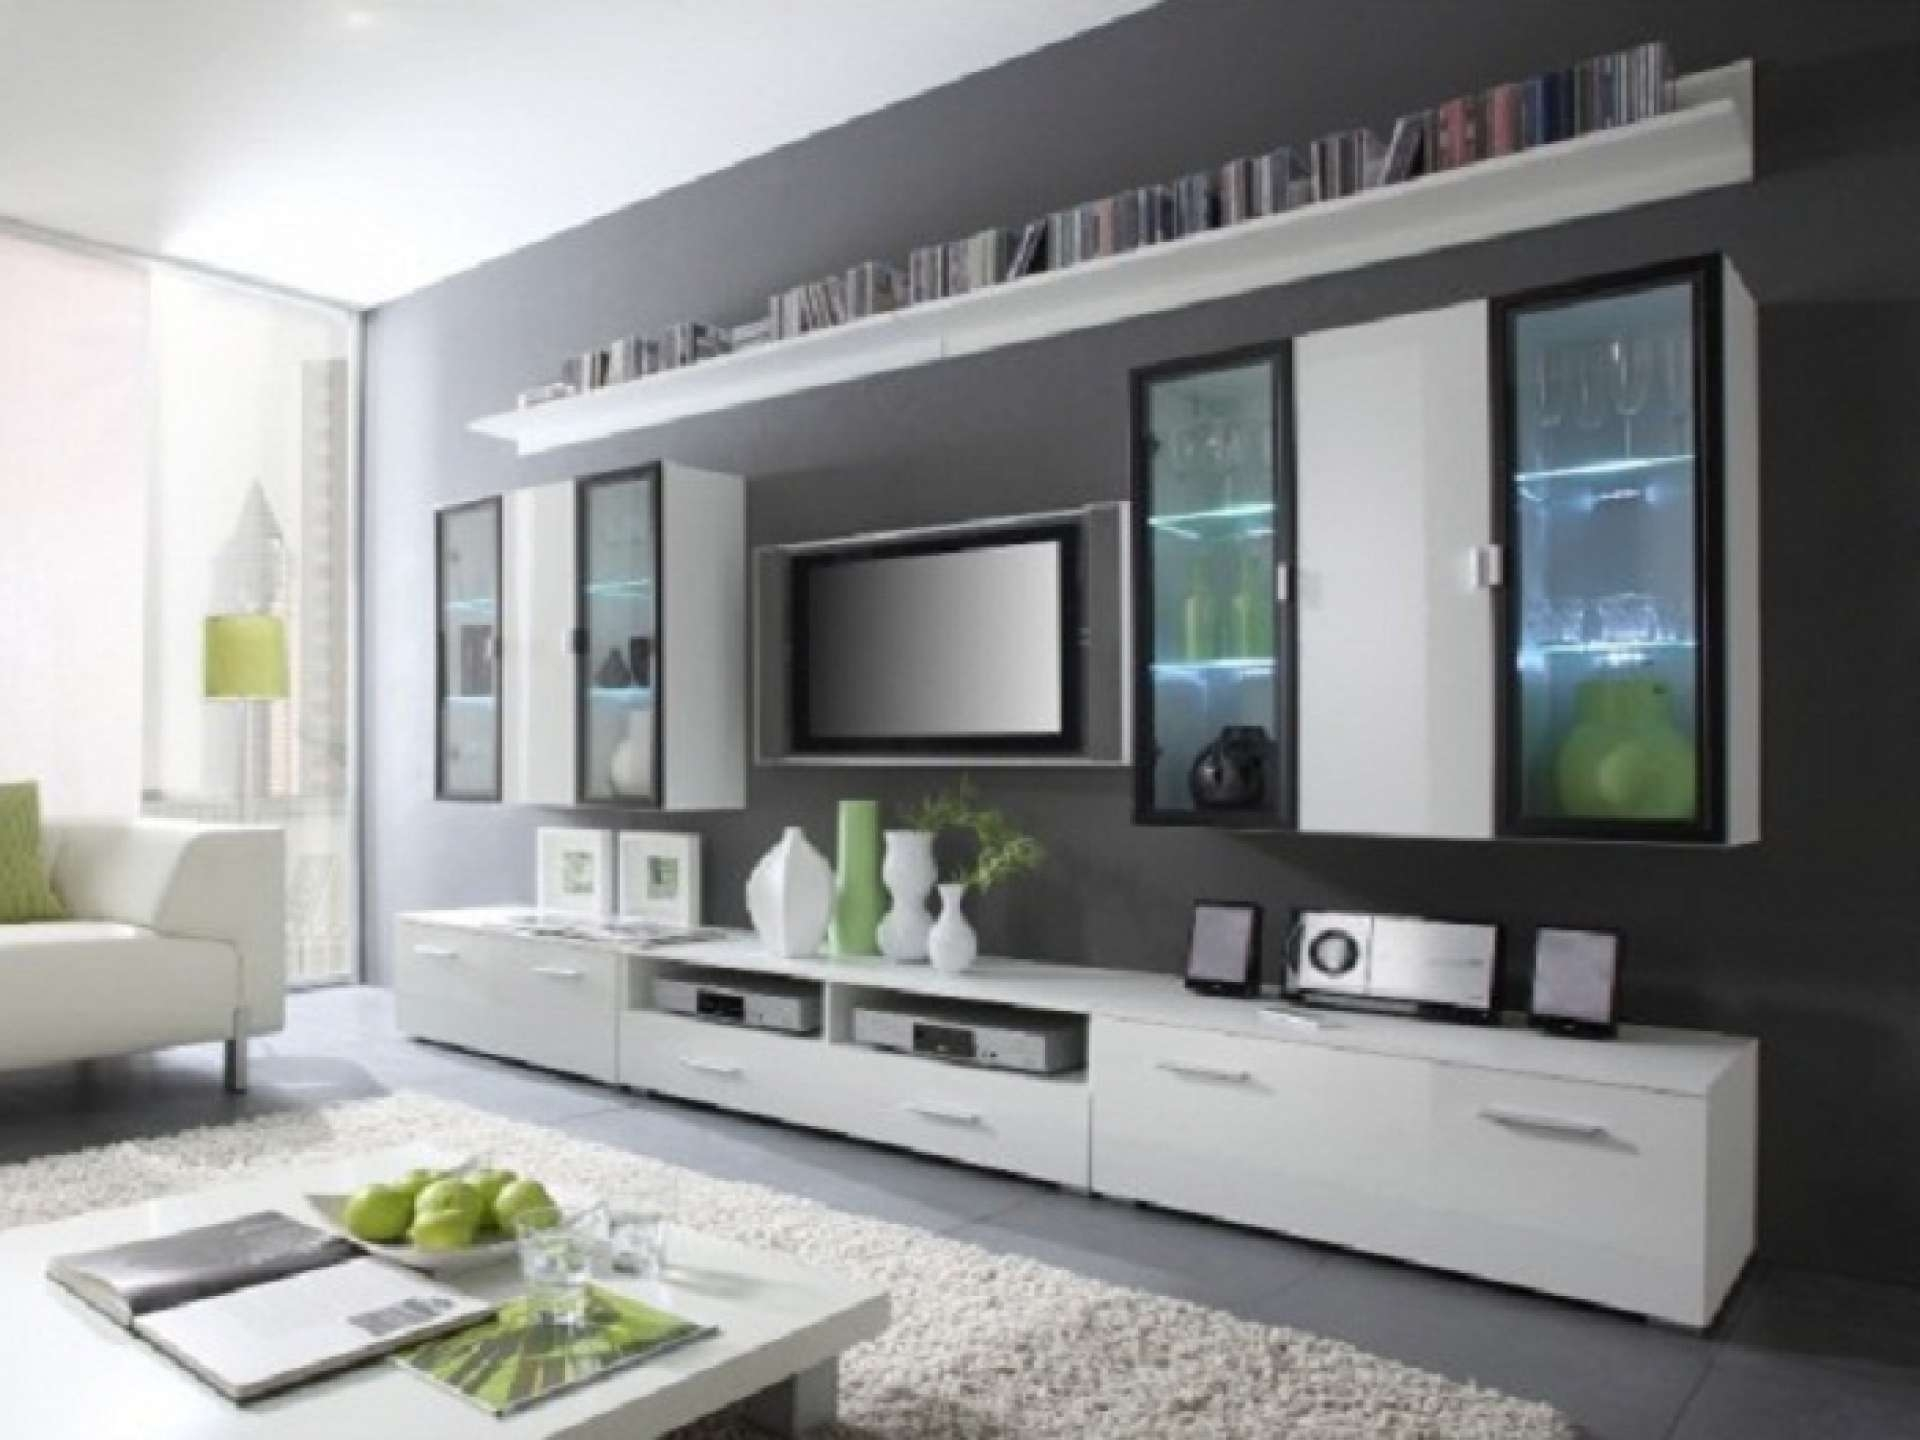 Wall Units: Amusing Wall Cabinet Tv Wall Mount Tv Cabinet Ikea Pertaining To Wall Mounted Tv Stands For Flat Screens (View 8 of 15)